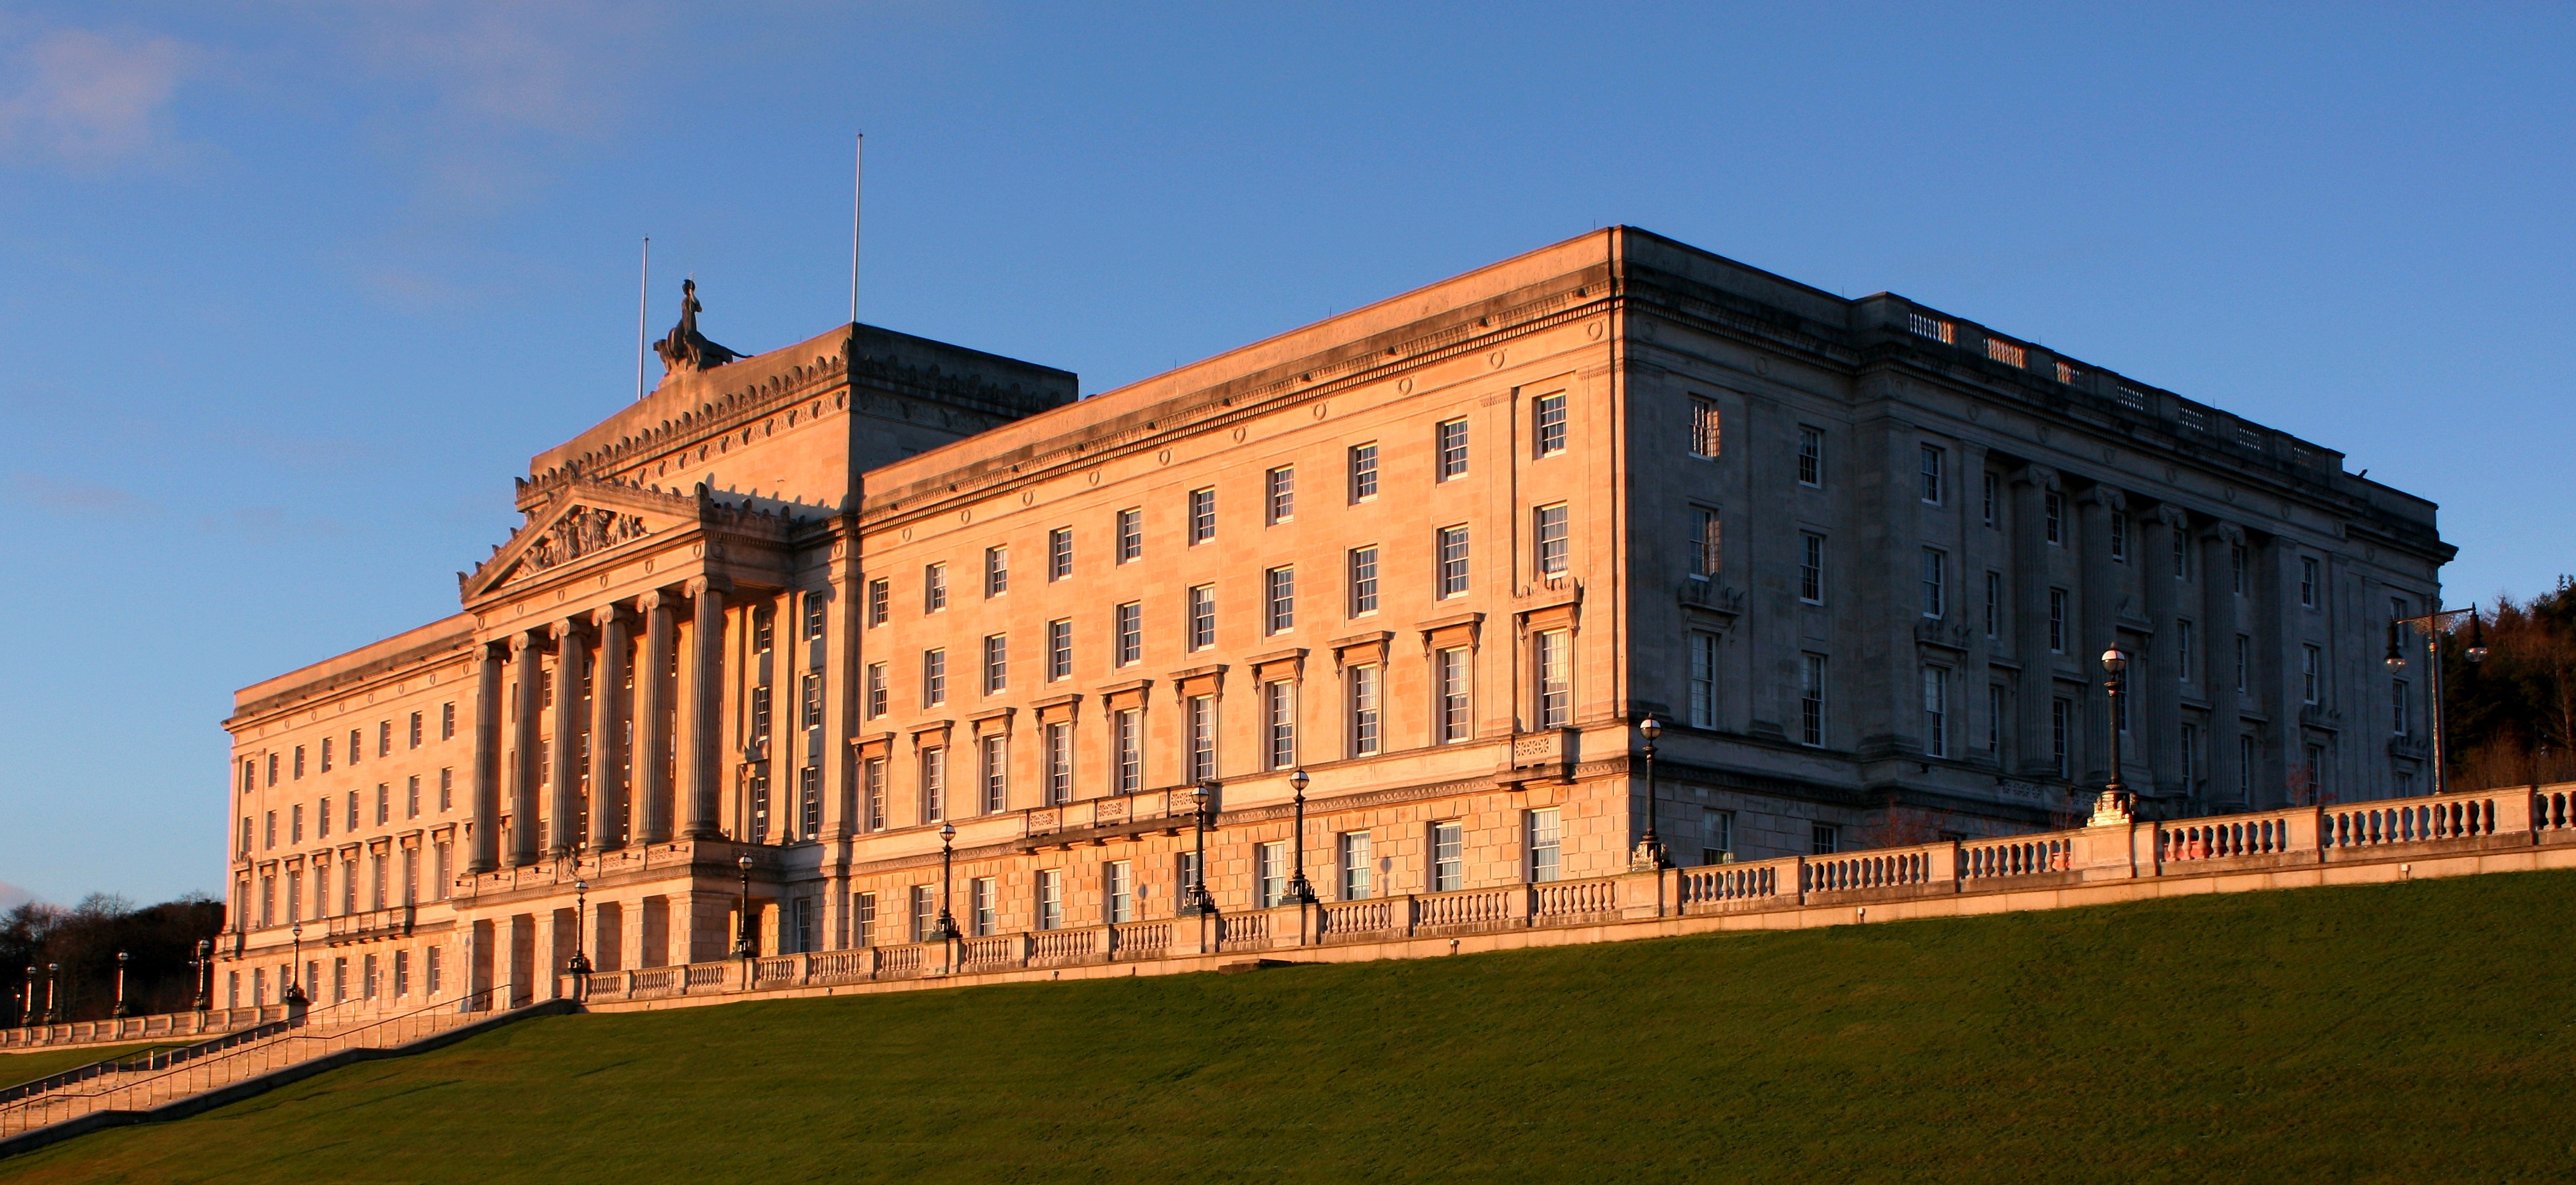 Parliament Buildings at Sunset (Feb 2009)